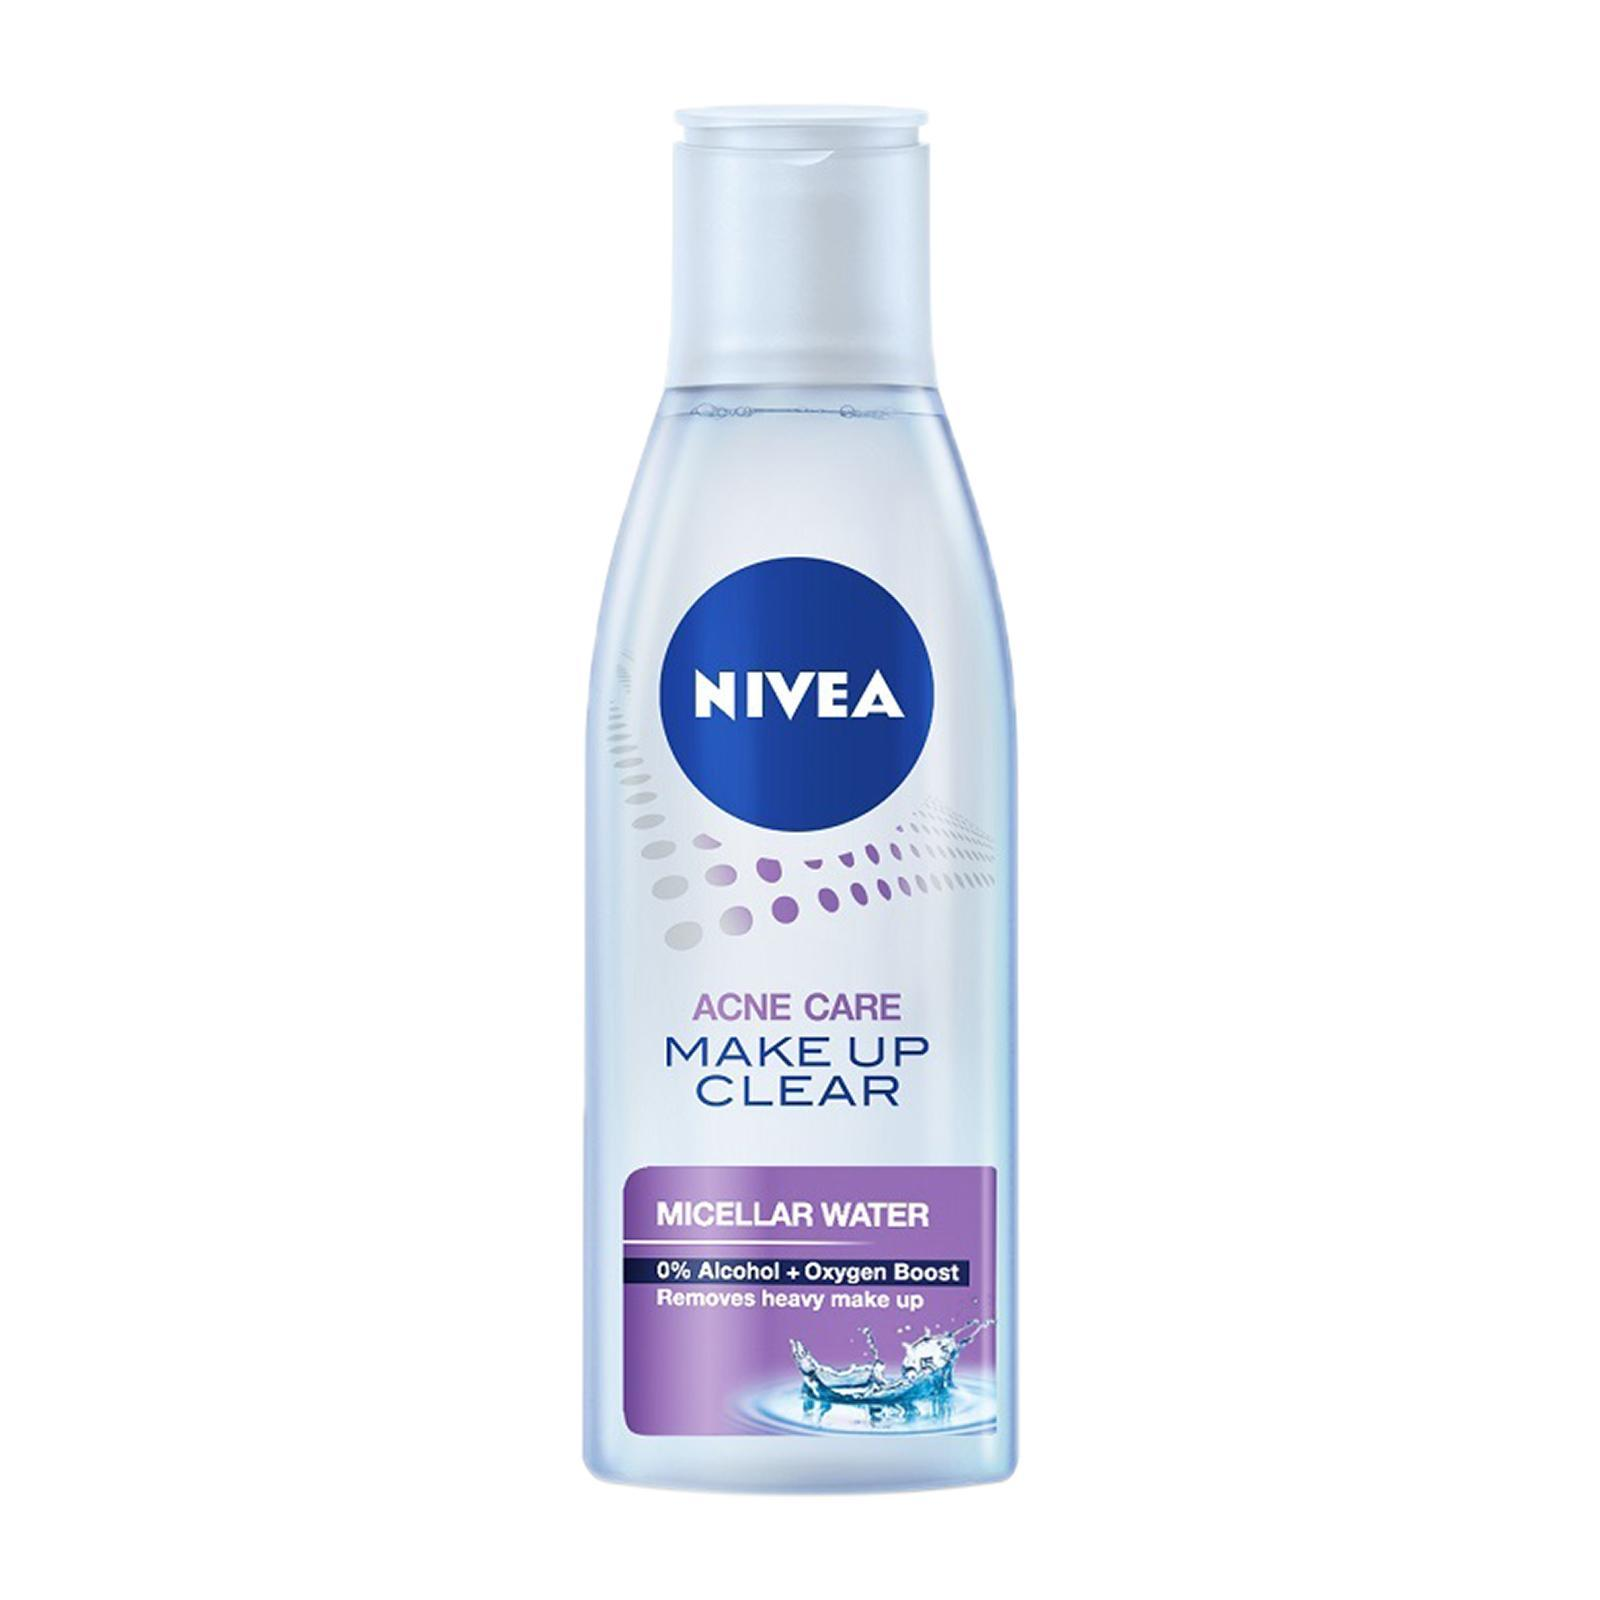 Nivea Face Care For Women Cleanser Make Up Clear Acne Care Micellar Water